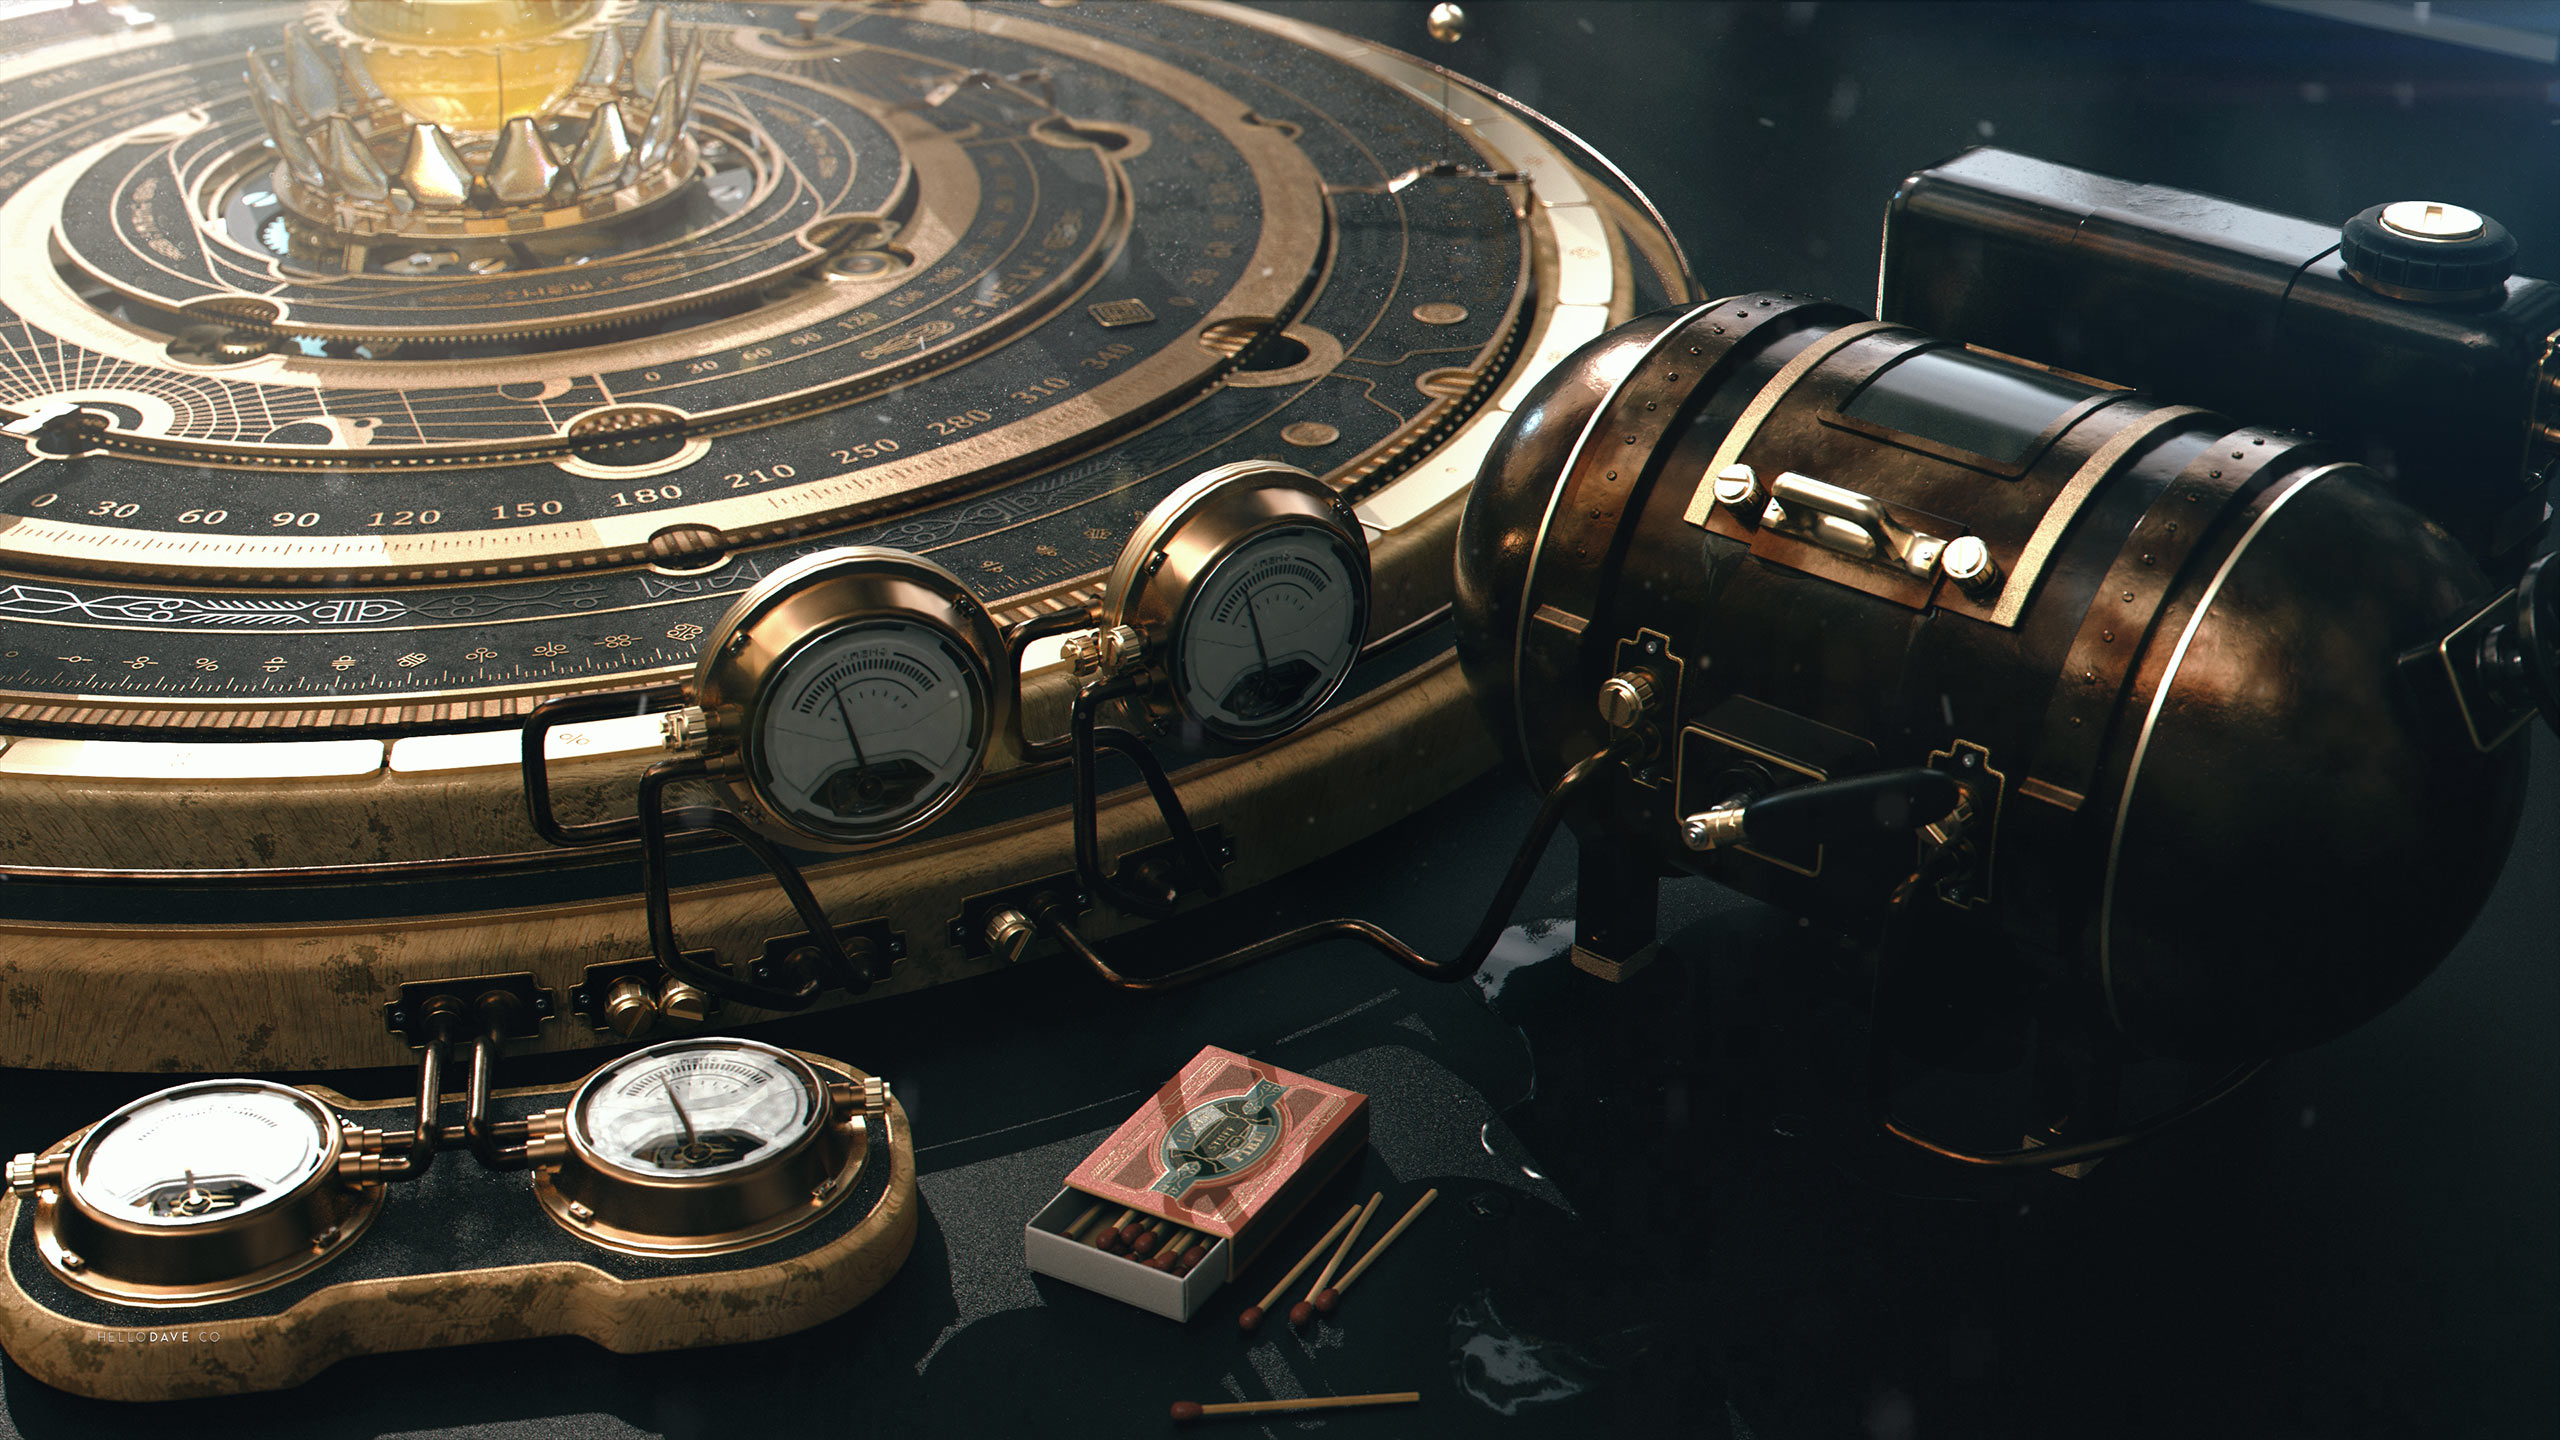 Steampunk_table_astrolabe_04_2K